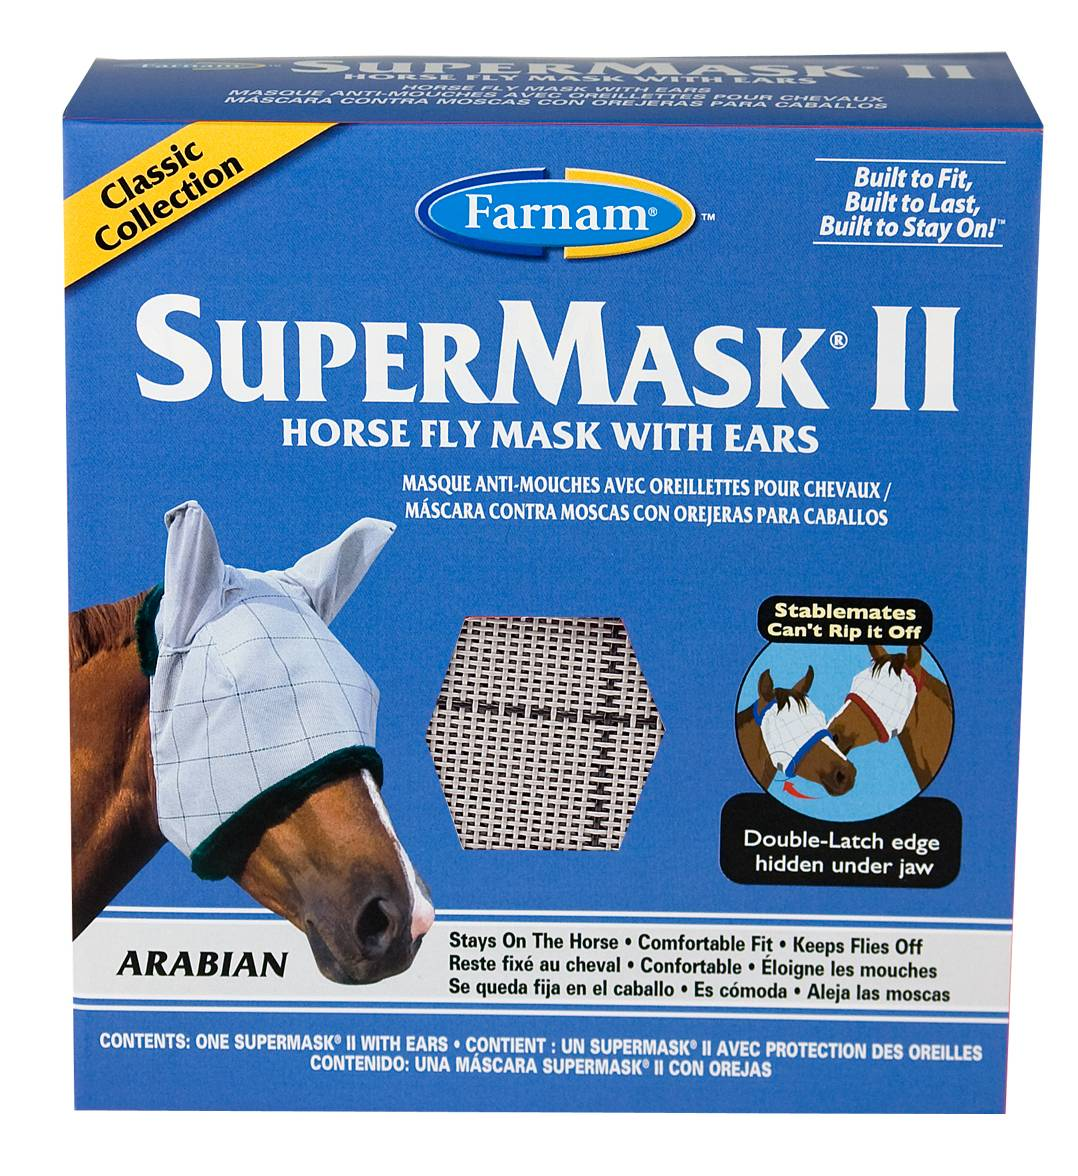 Supermask II Horse Fly Mask with Ears Classic Collection